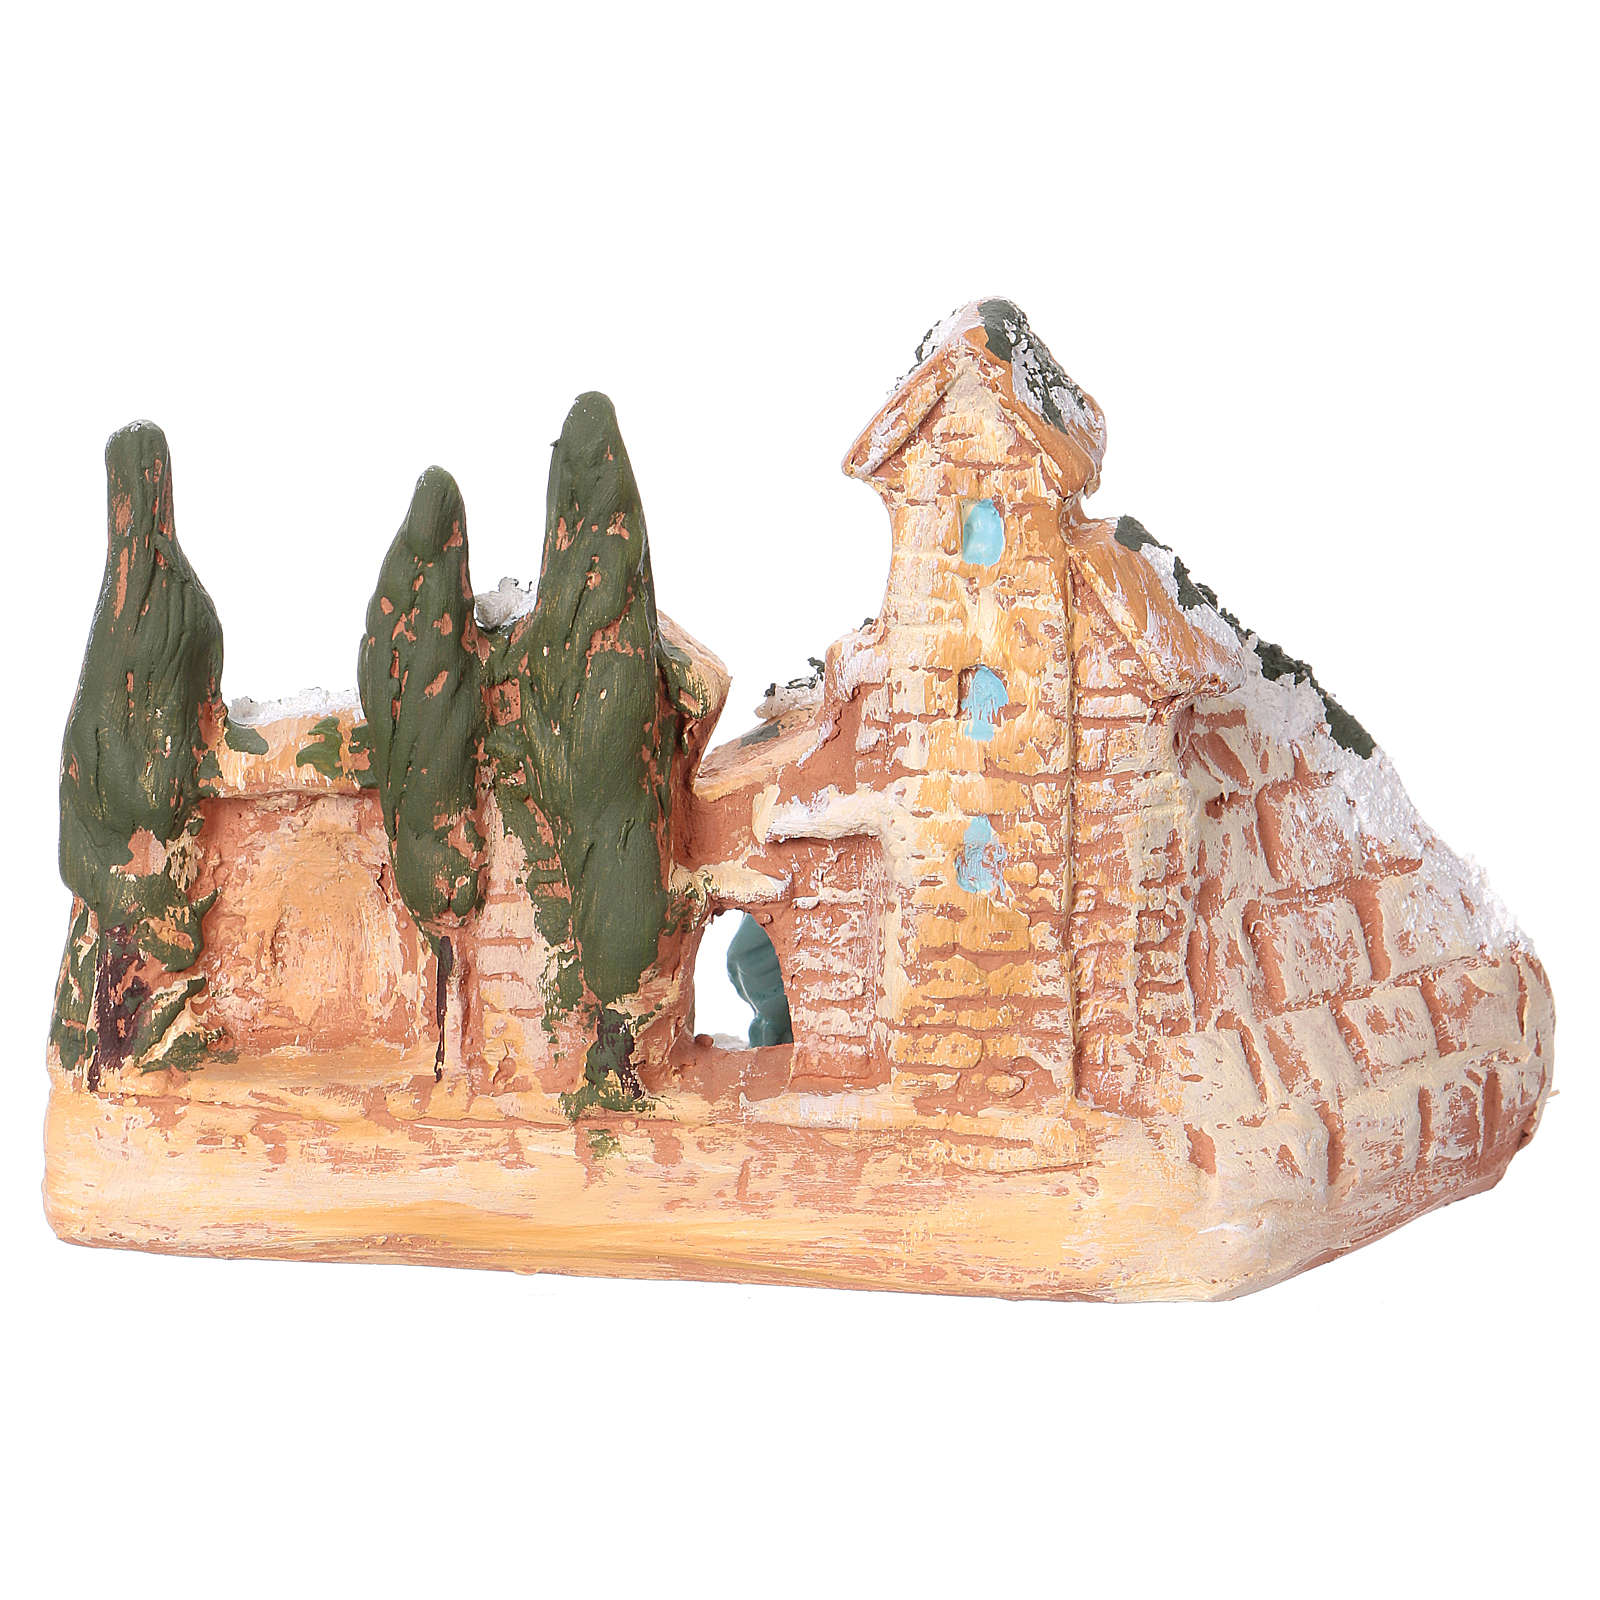 Hut with village in Deruta terracotta with Hol Family 3 cm 10x15x10 cm 4